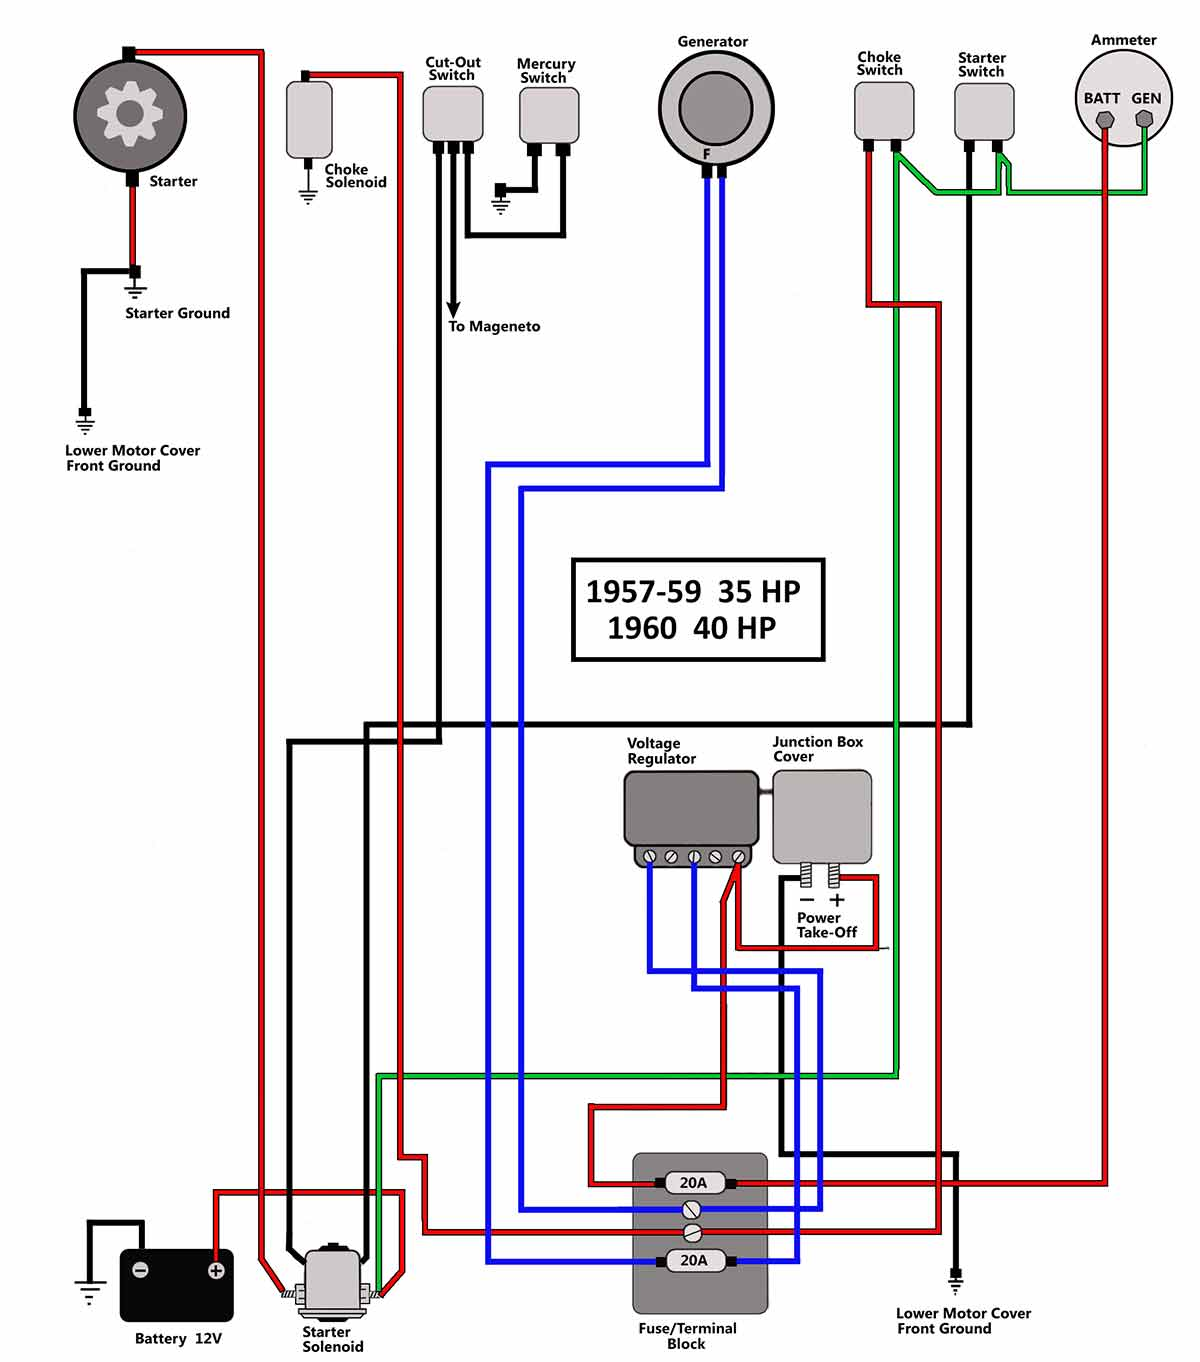 25 hp johnson outboard motor wiring diagram wiring diagram schematics35 hp johnson outboard wiring diagram furthermore how to install a 25 hp johnson outboard motor wiring diagram